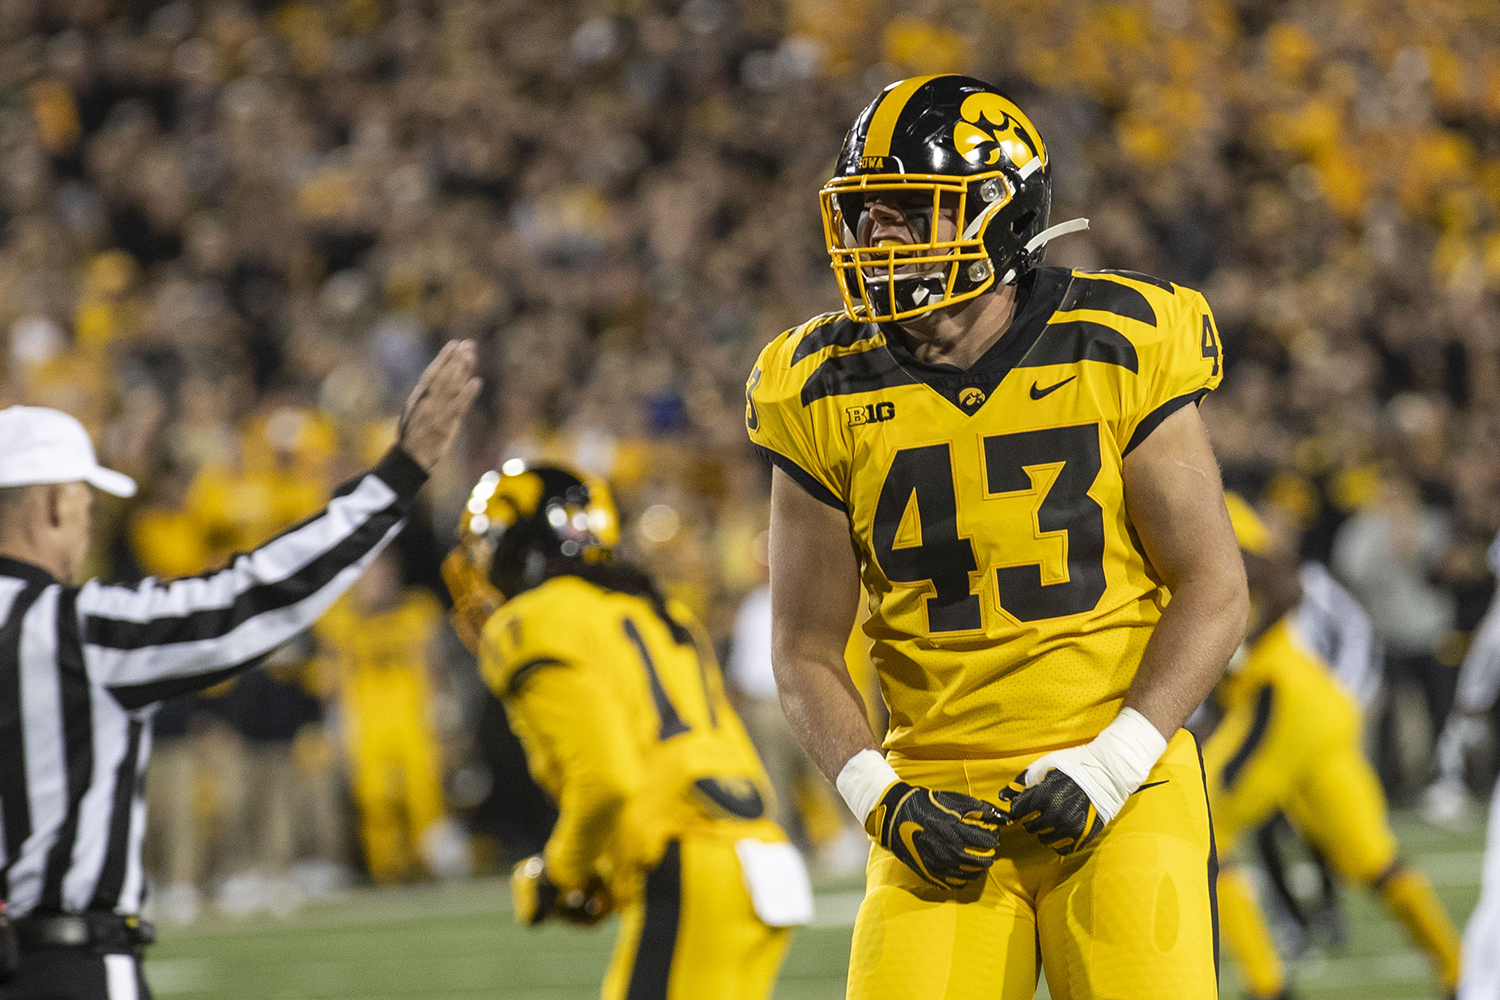 LB Dillon Doyle celebrates during the Iowa football vs. Penn State game in Kinnick Stadium on Saturday, Oct. 12, 2019. The Nittany Lions defeated the Hawkeyes 17-12.